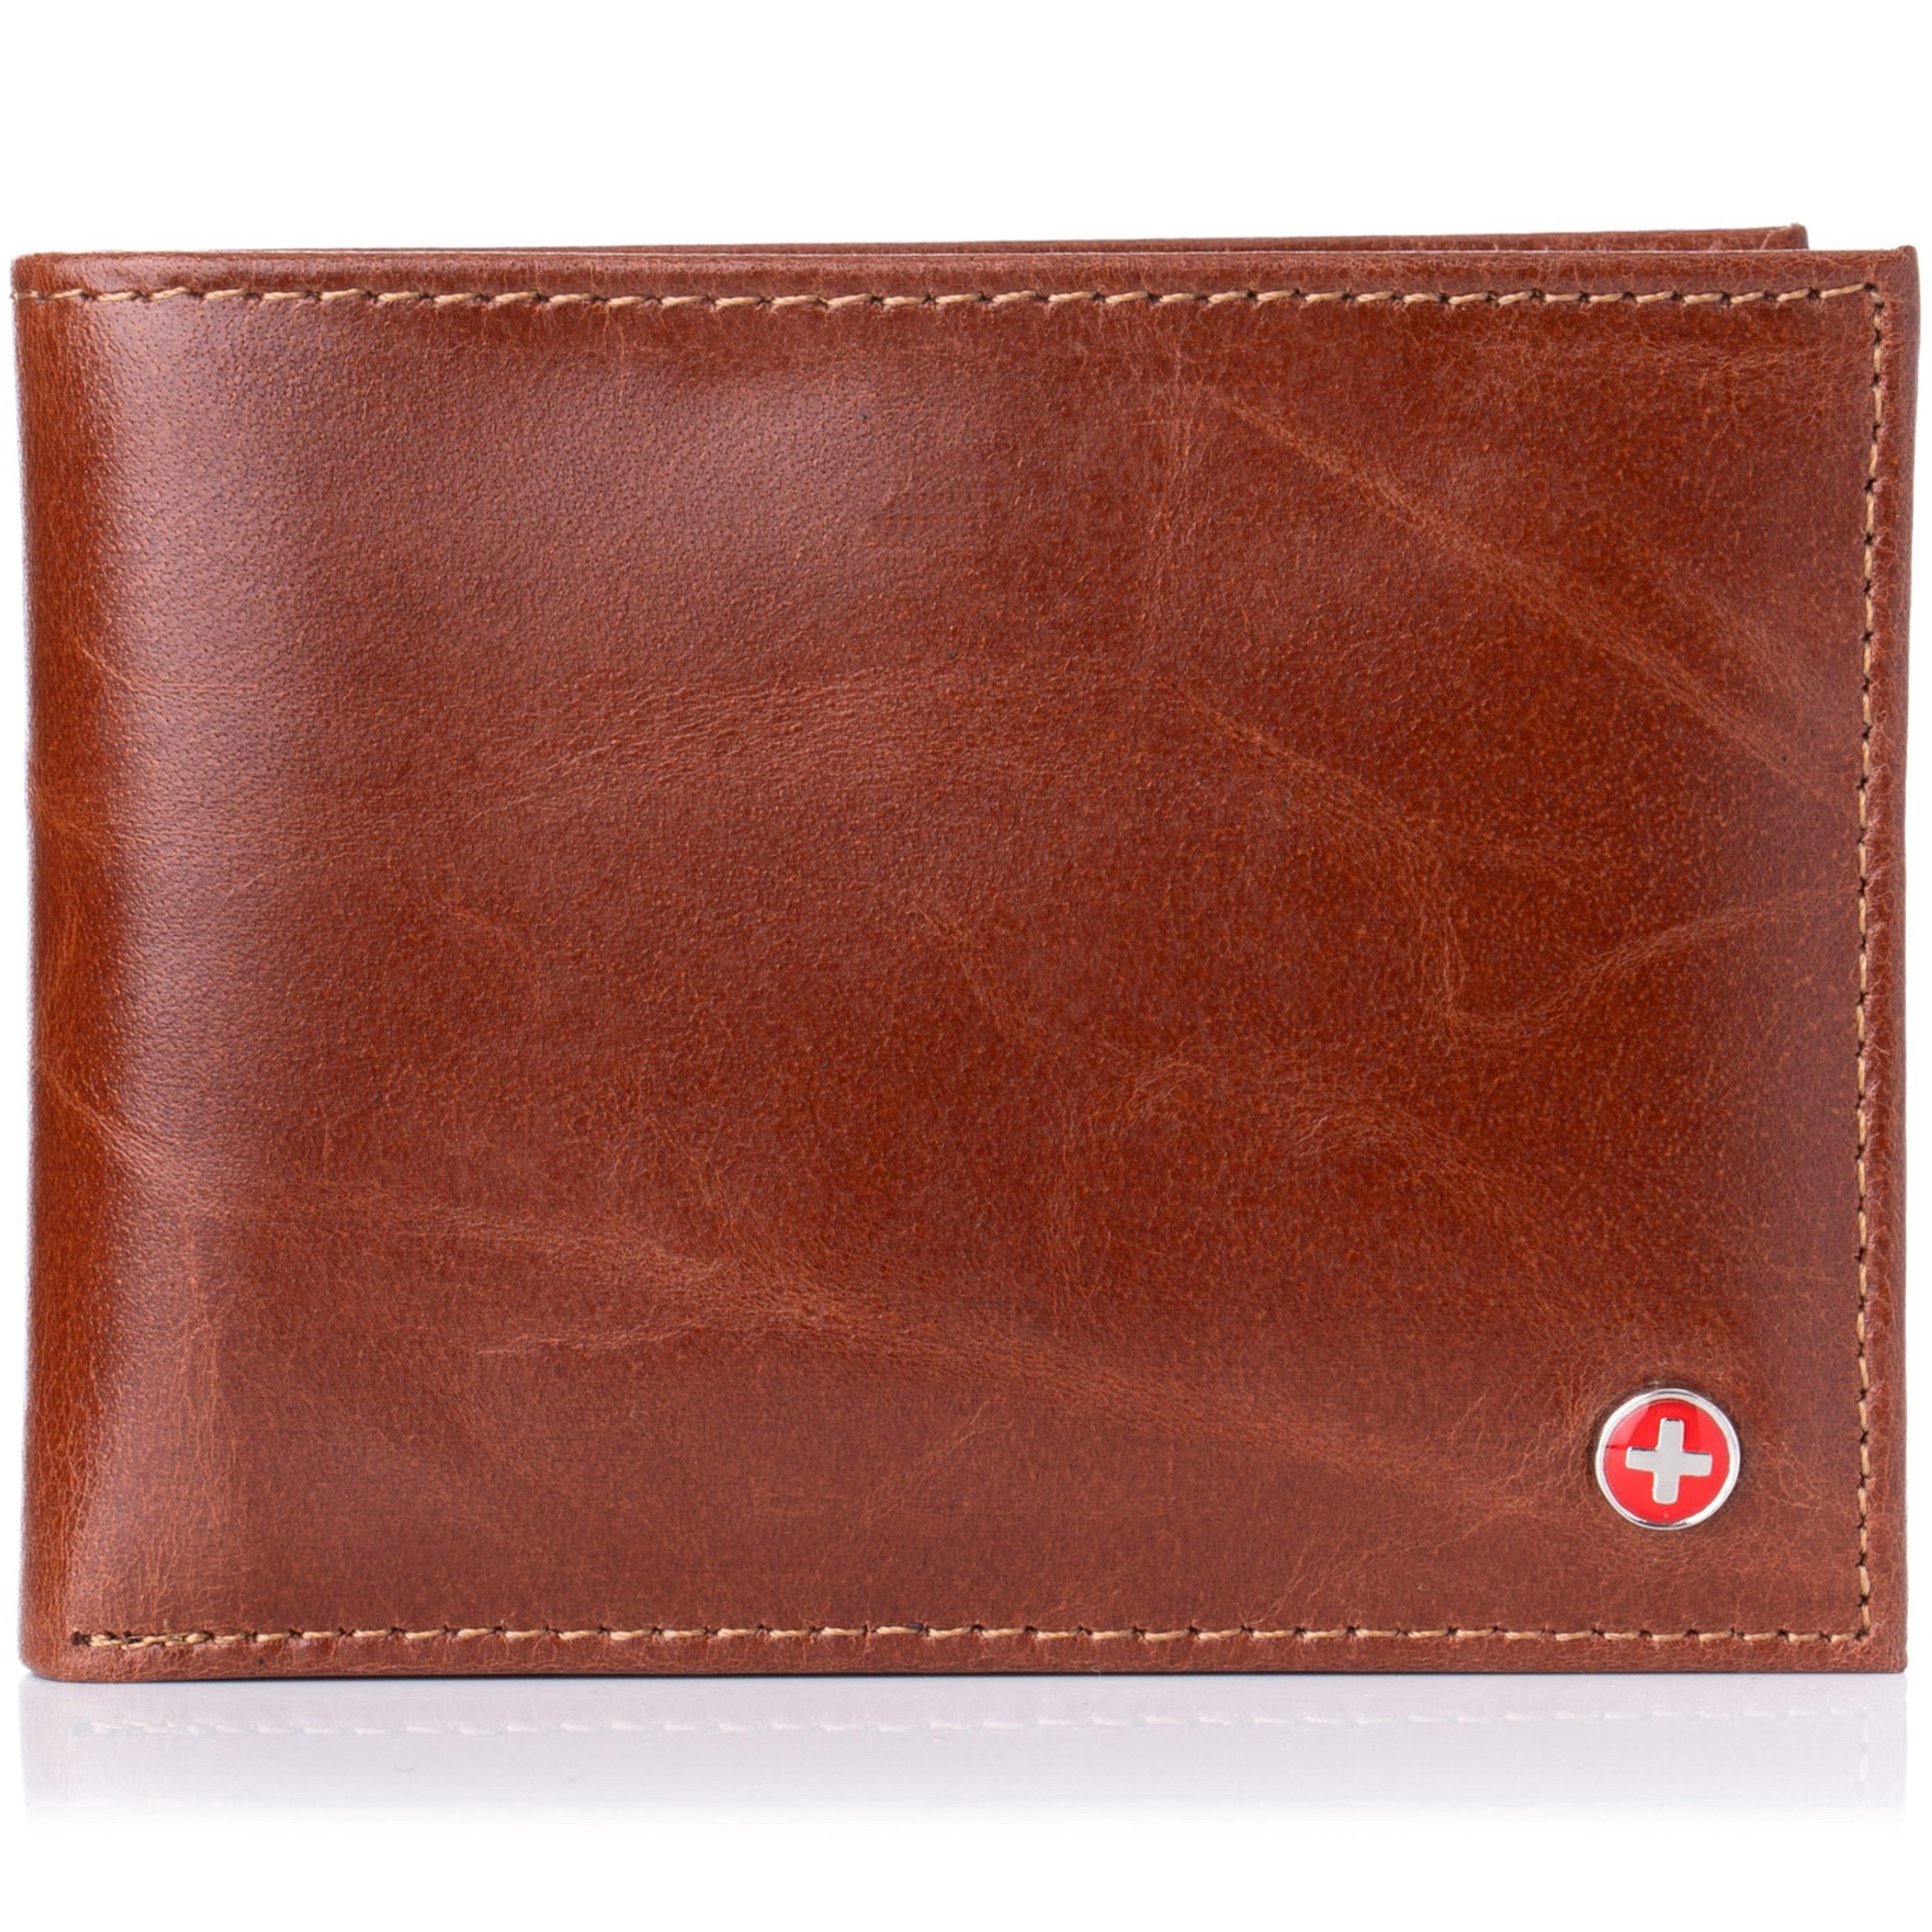 Alpine-Swiss-Mens-Wallet-Genuine-Leather-Removable-ID-Card-Case-Bifold-Passcase thumbnail 90